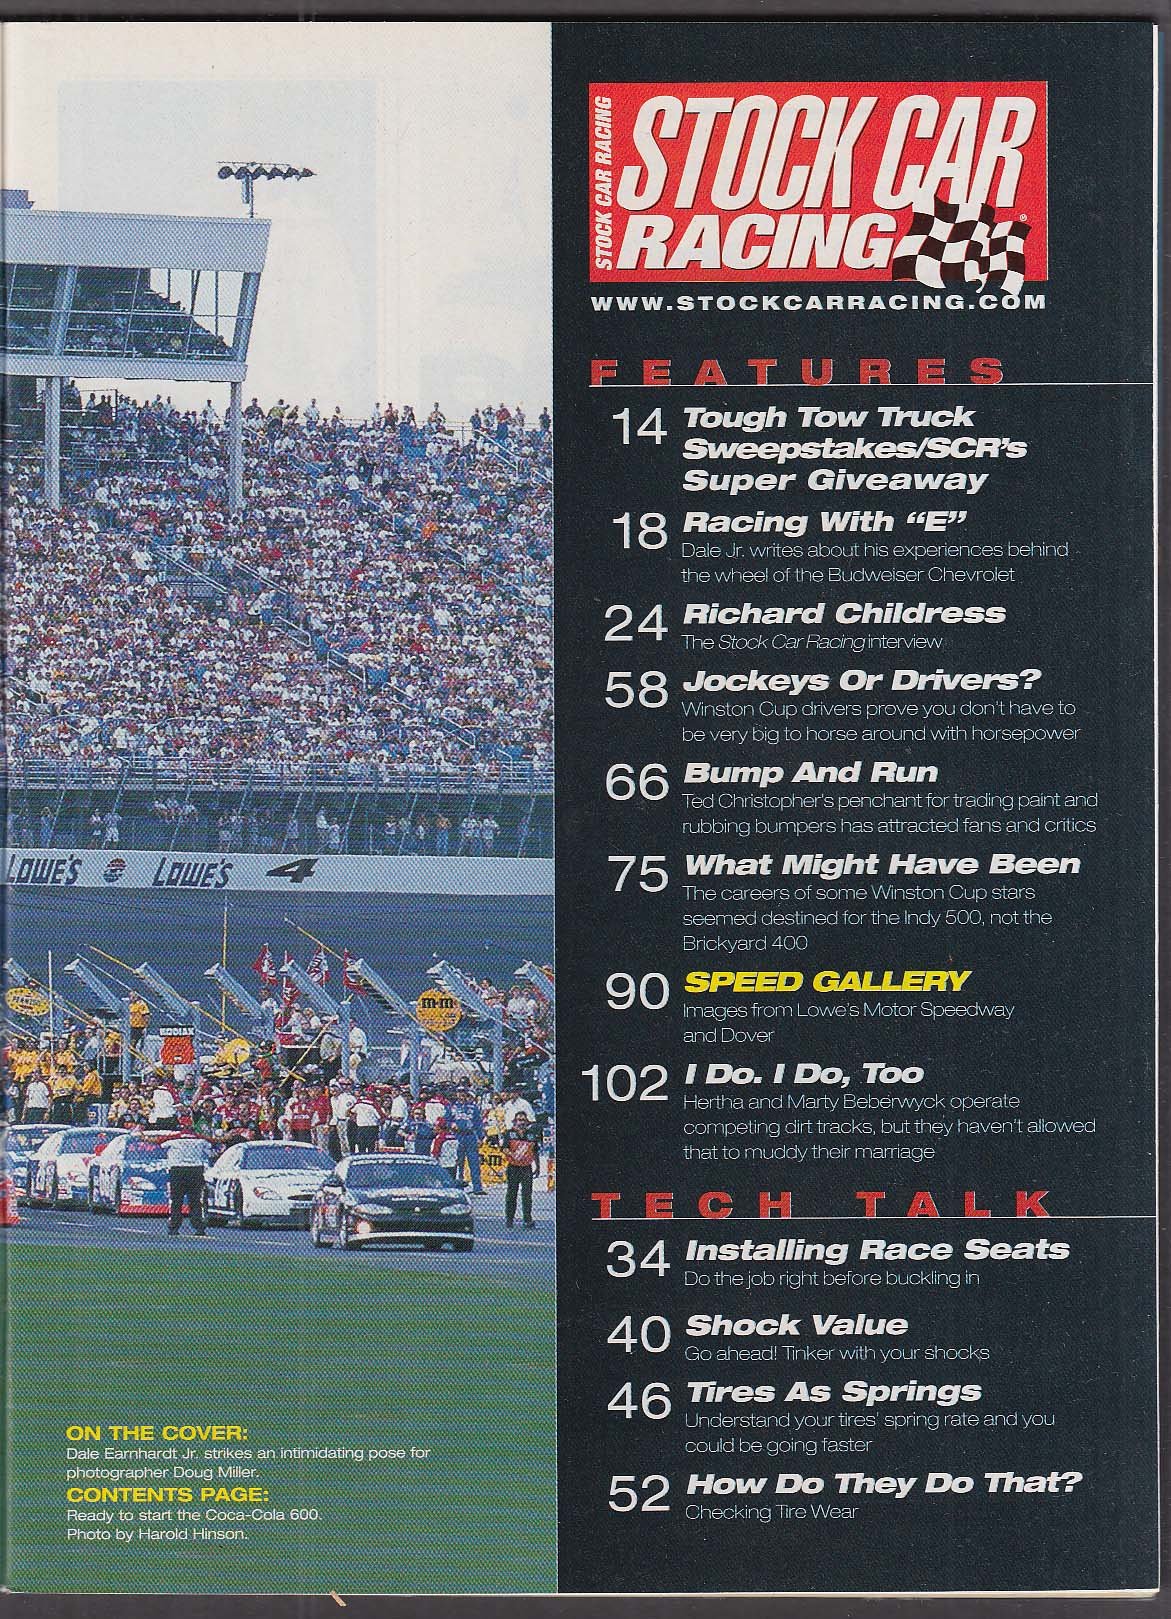 STOCK CAR RACING Dale Earnhardt Jr interview 9 2001